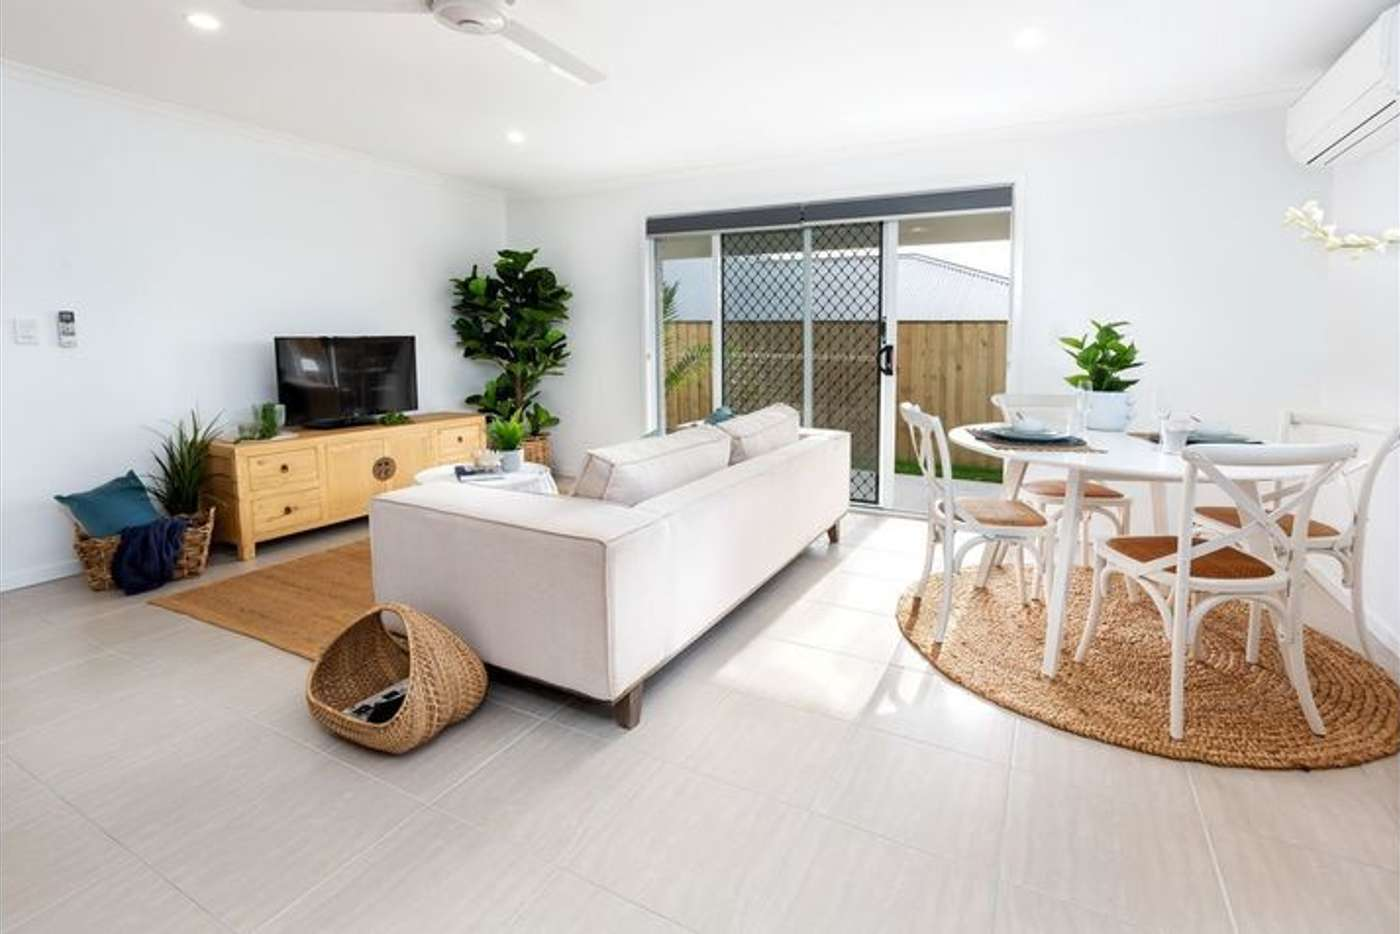 Main view of Homely house listing, 2/18 Proteus Street, Burpengary QLD 4505